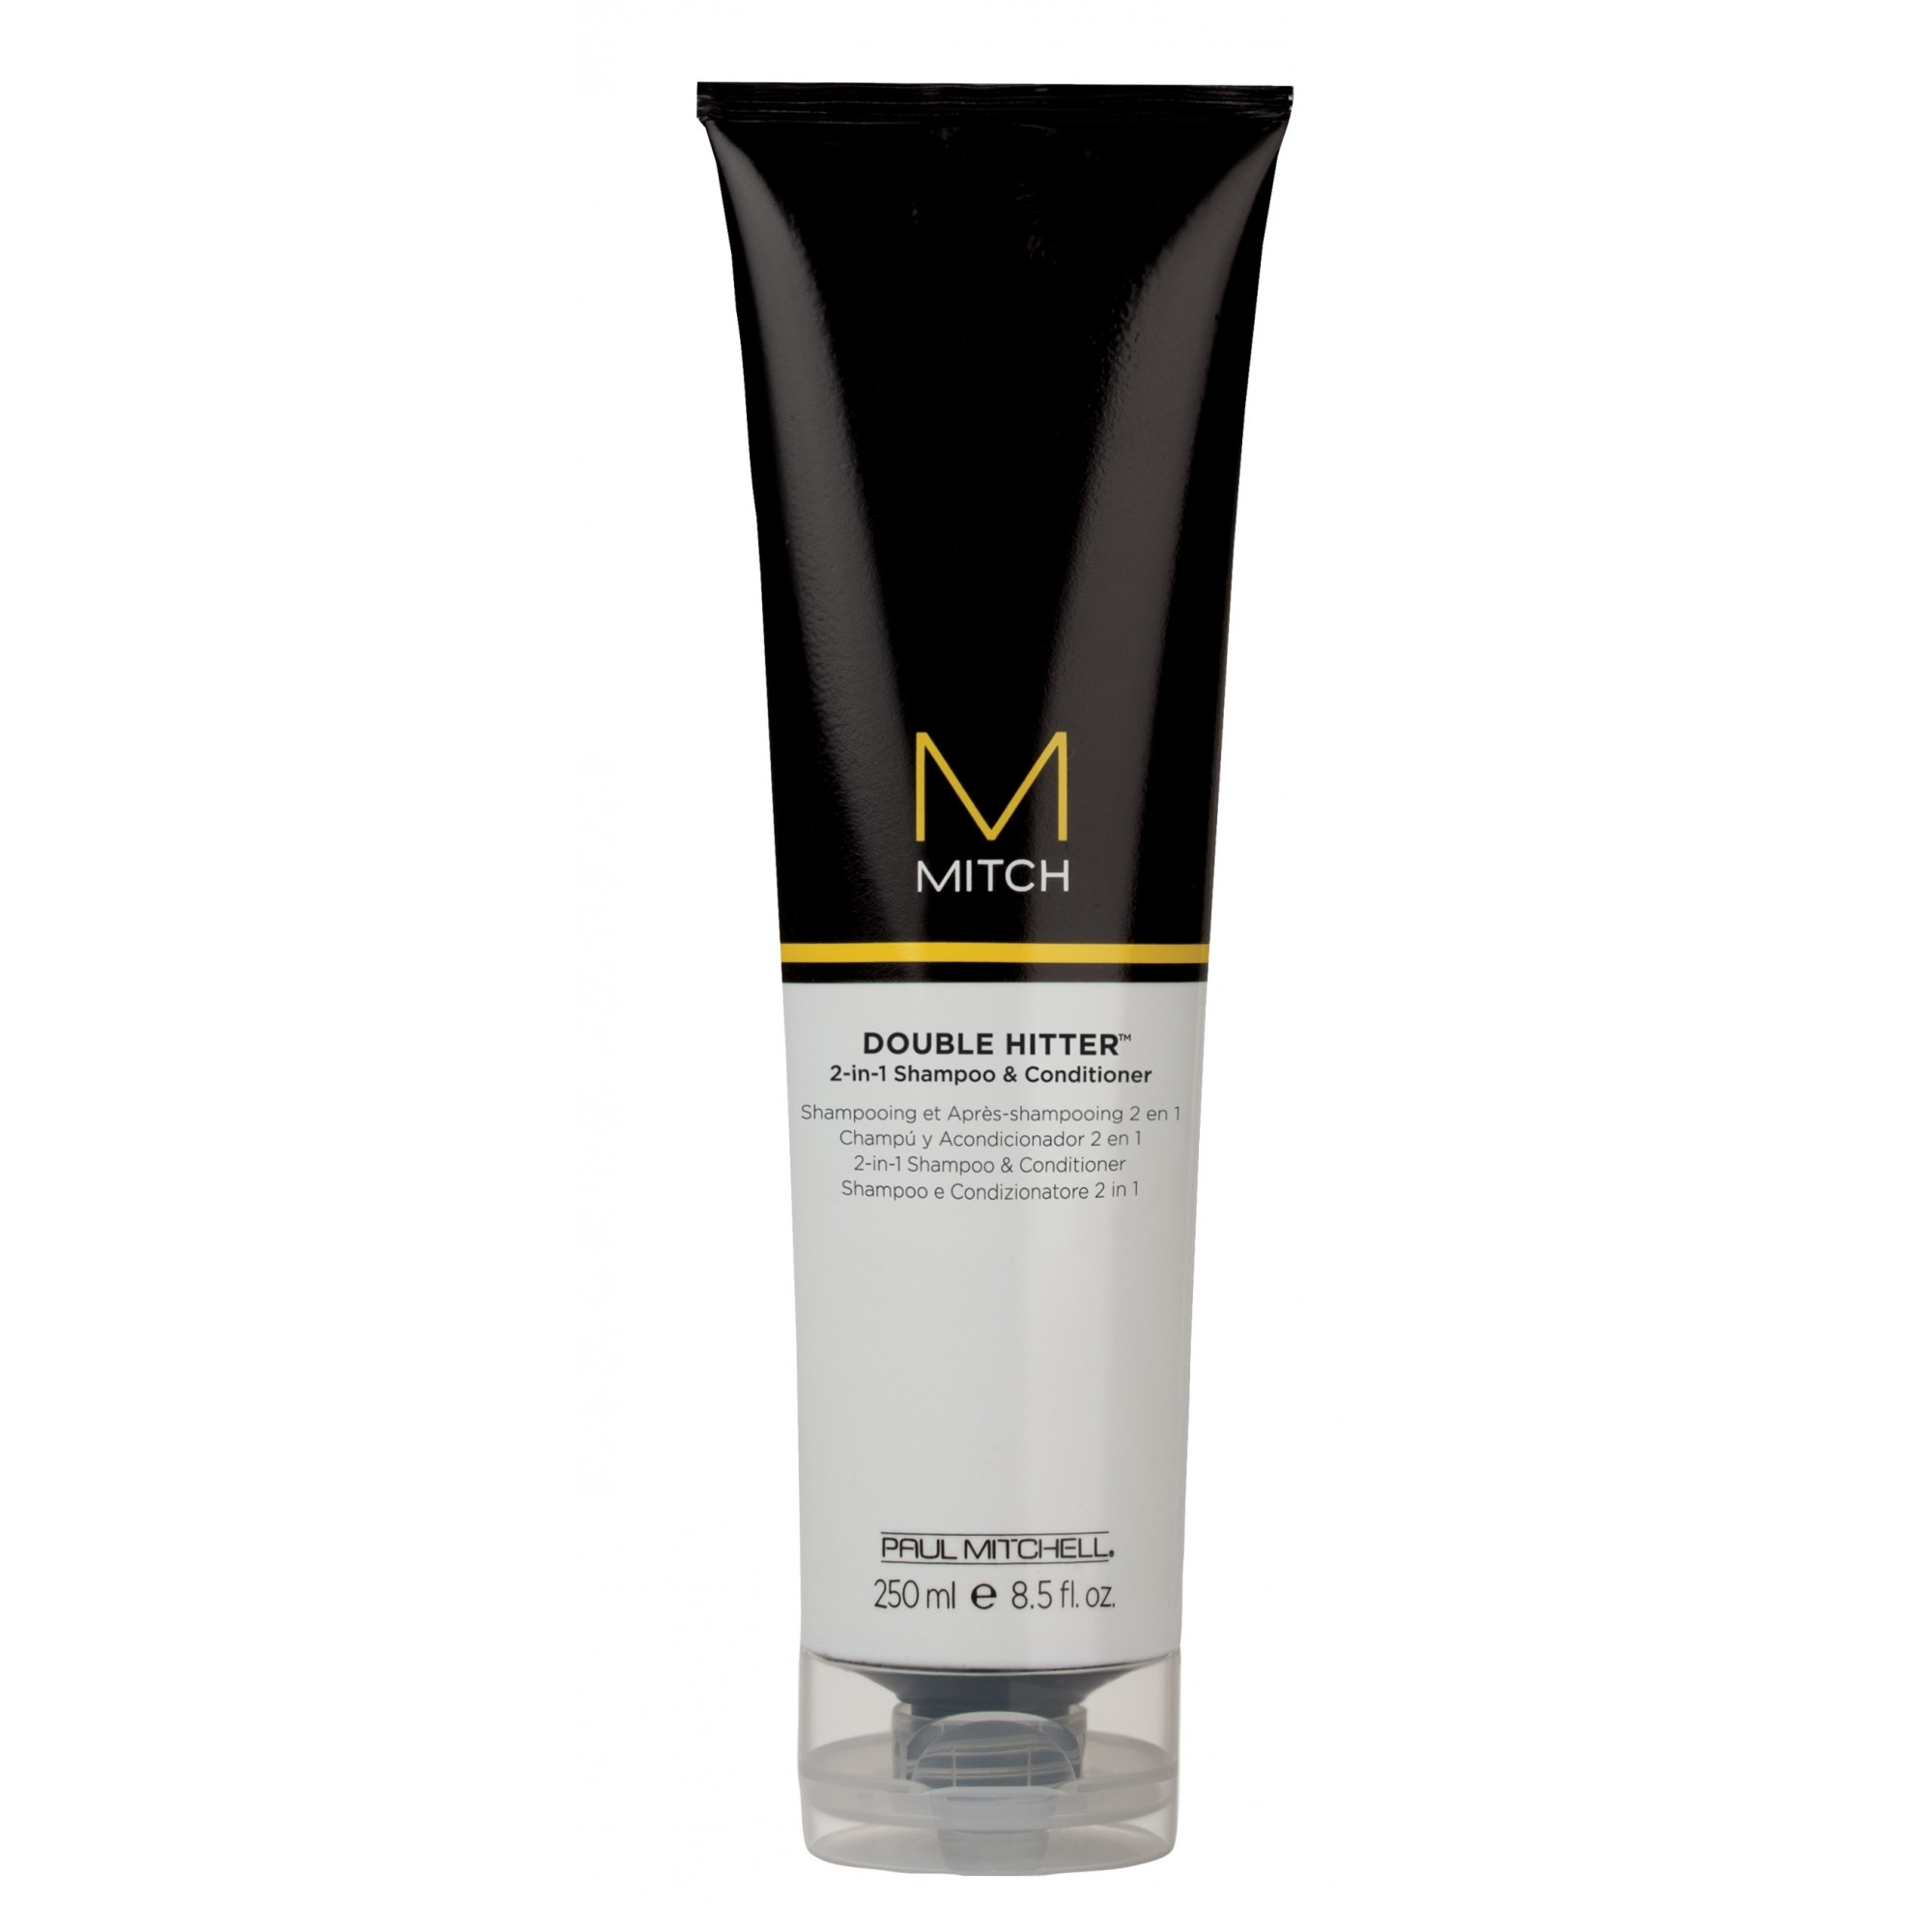 Shampoo & Condicionador Mitch Double Hitter (250ml) | PAUL MITCHELL